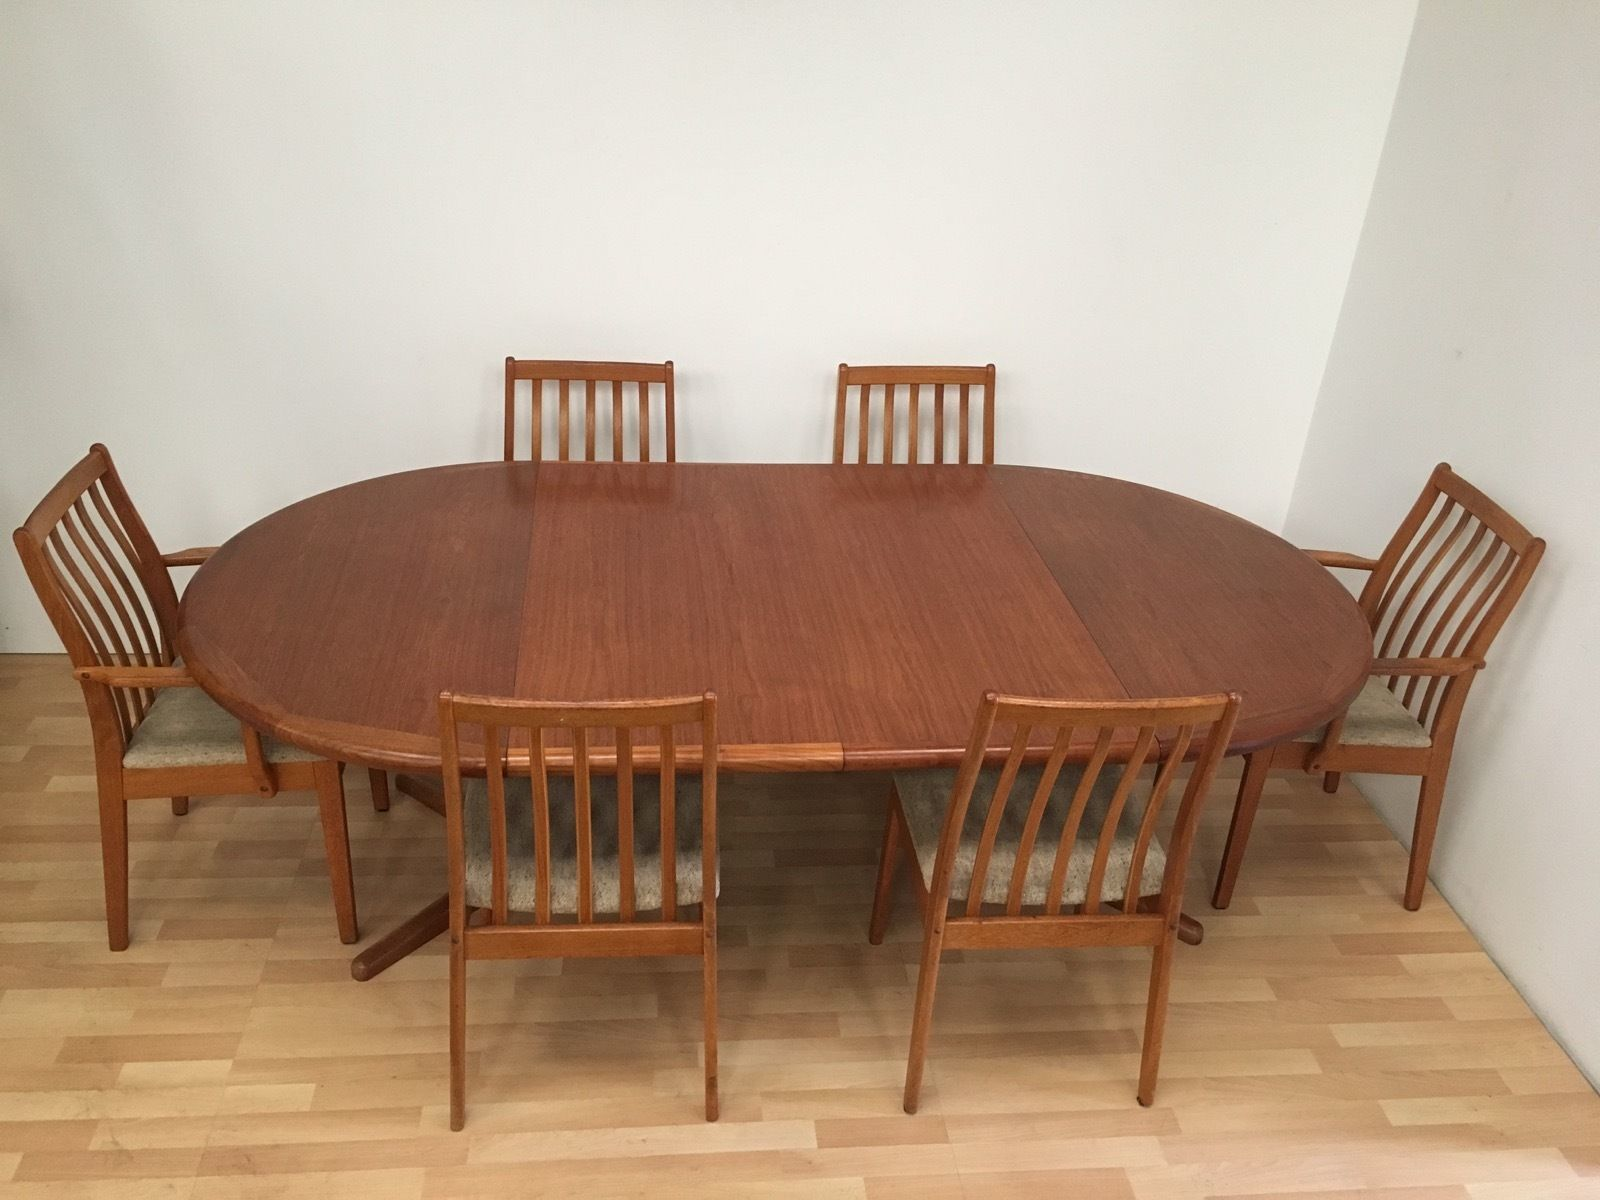 Sensational Rare Danish Vamdrup Stolefabrik Mid Century Teak Dining Table And Six Chairs Beatyapartments Chair Design Images Beatyapartmentscom